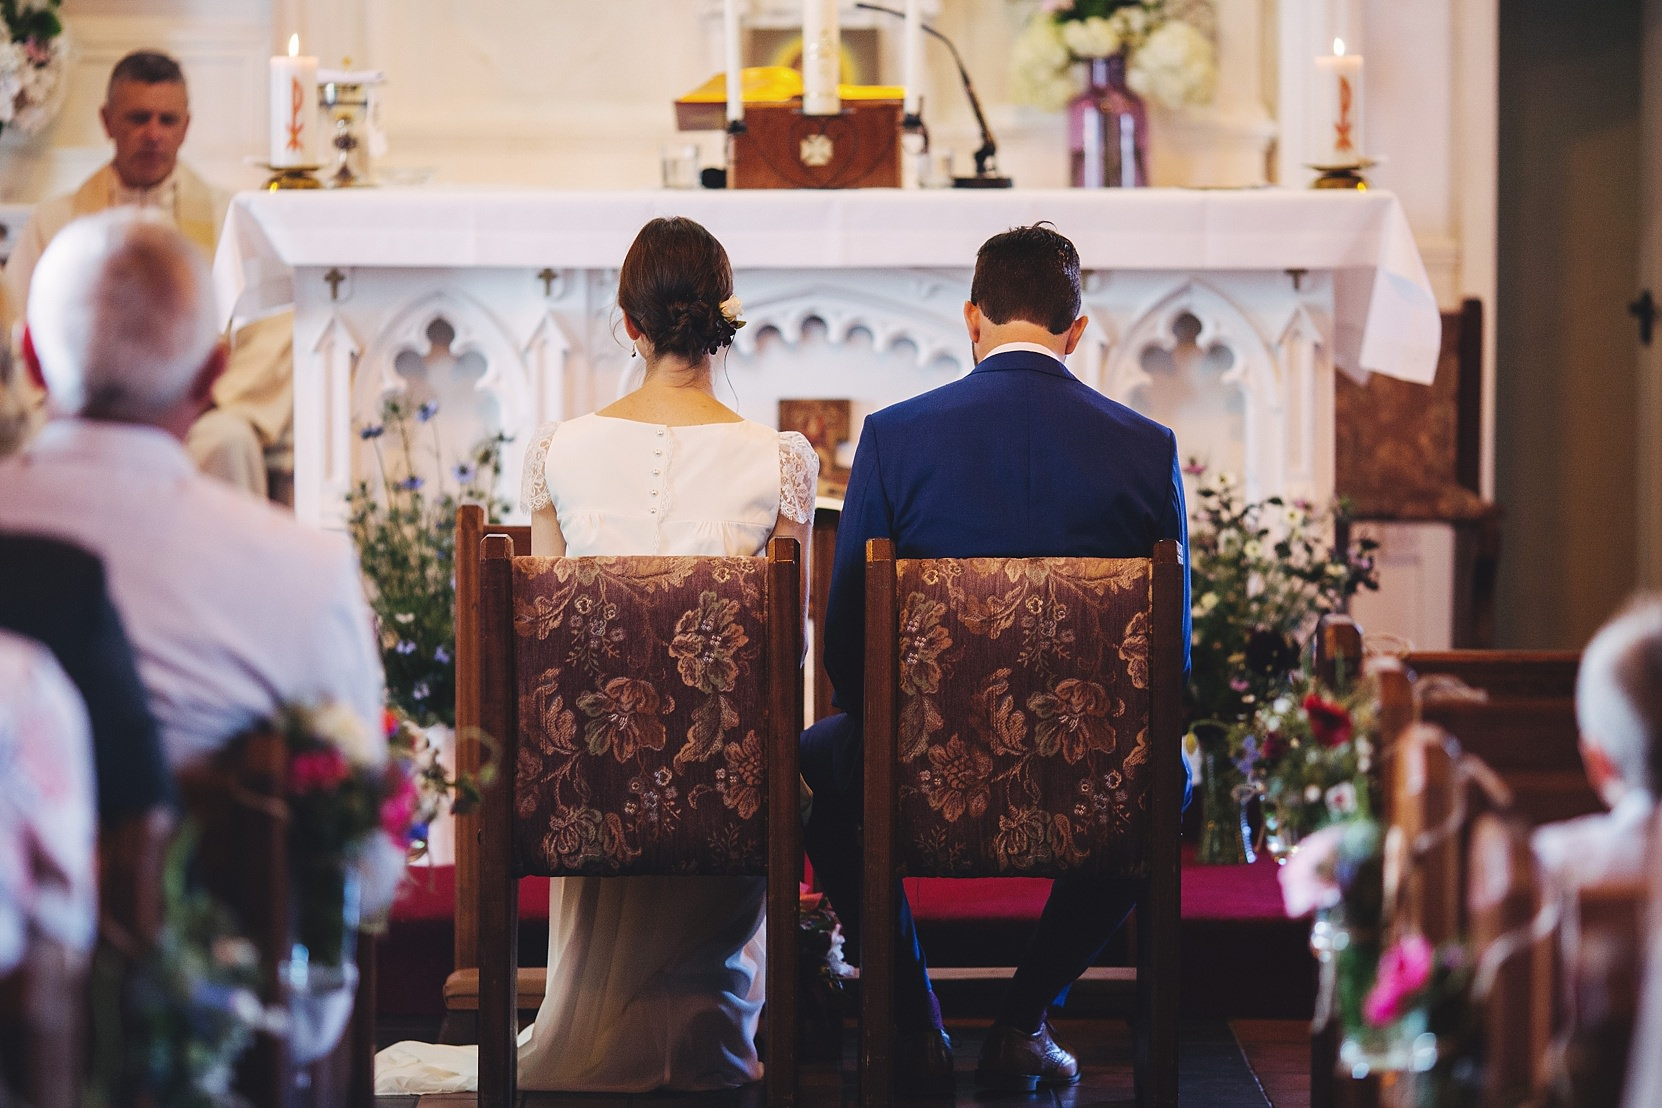 Bride and Groom in a church in Limerick on their wedding day